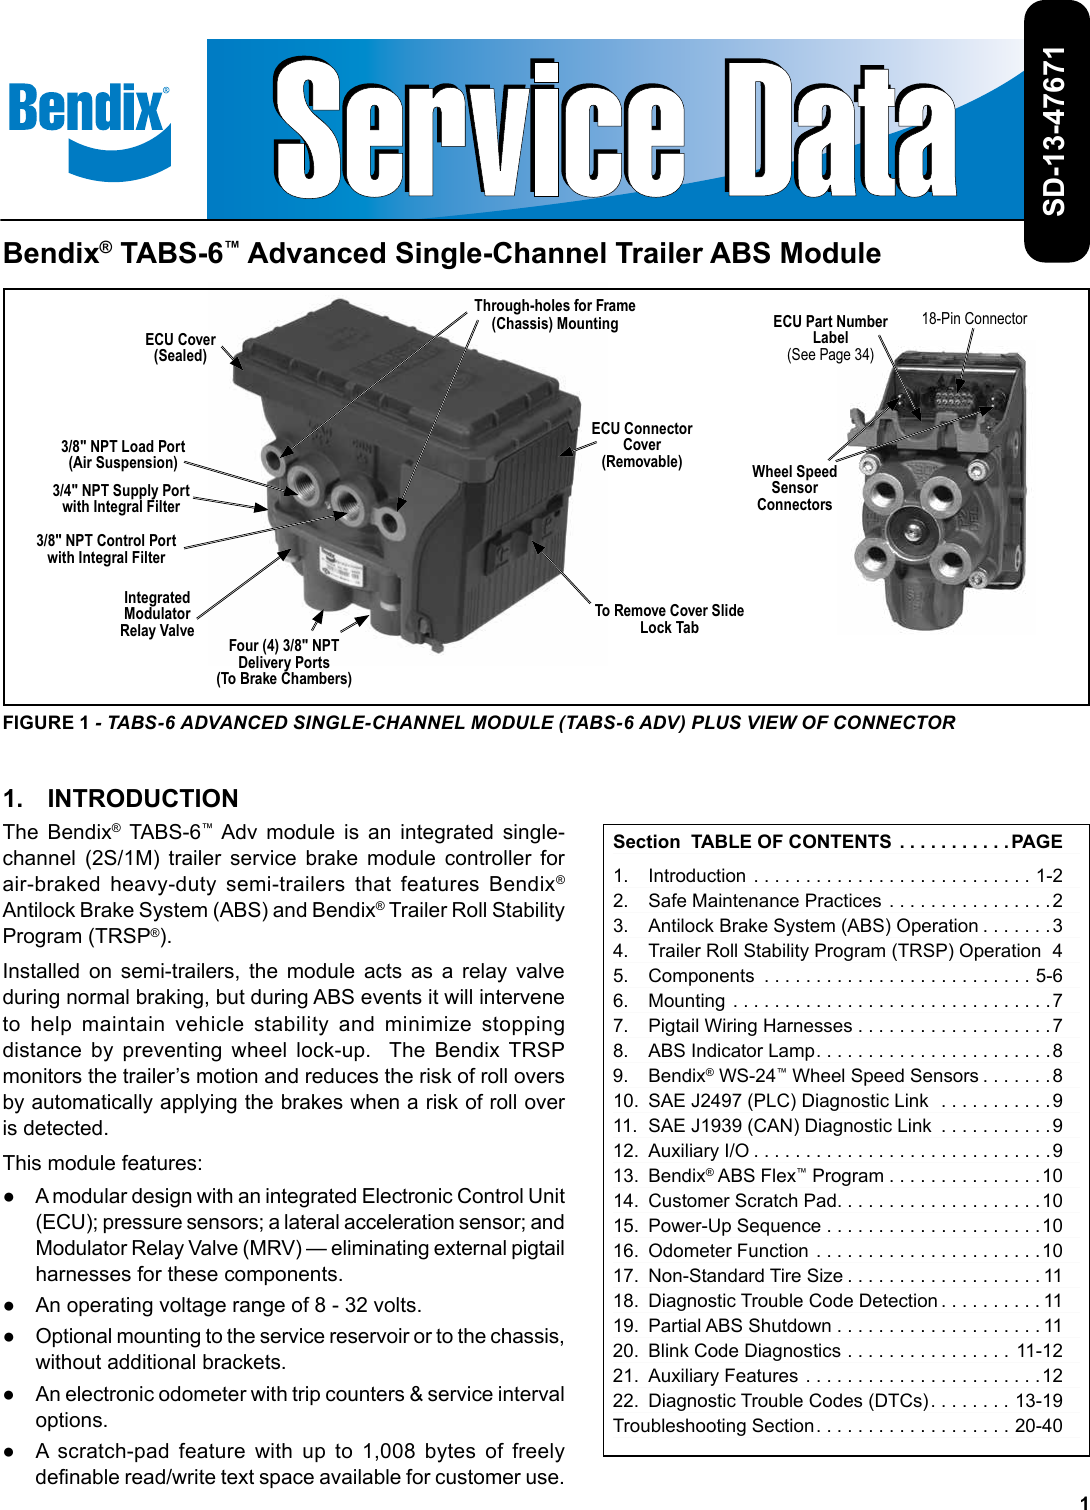 Bendix Bw2718 Users Manual Trailer Abs Wiring Diagram